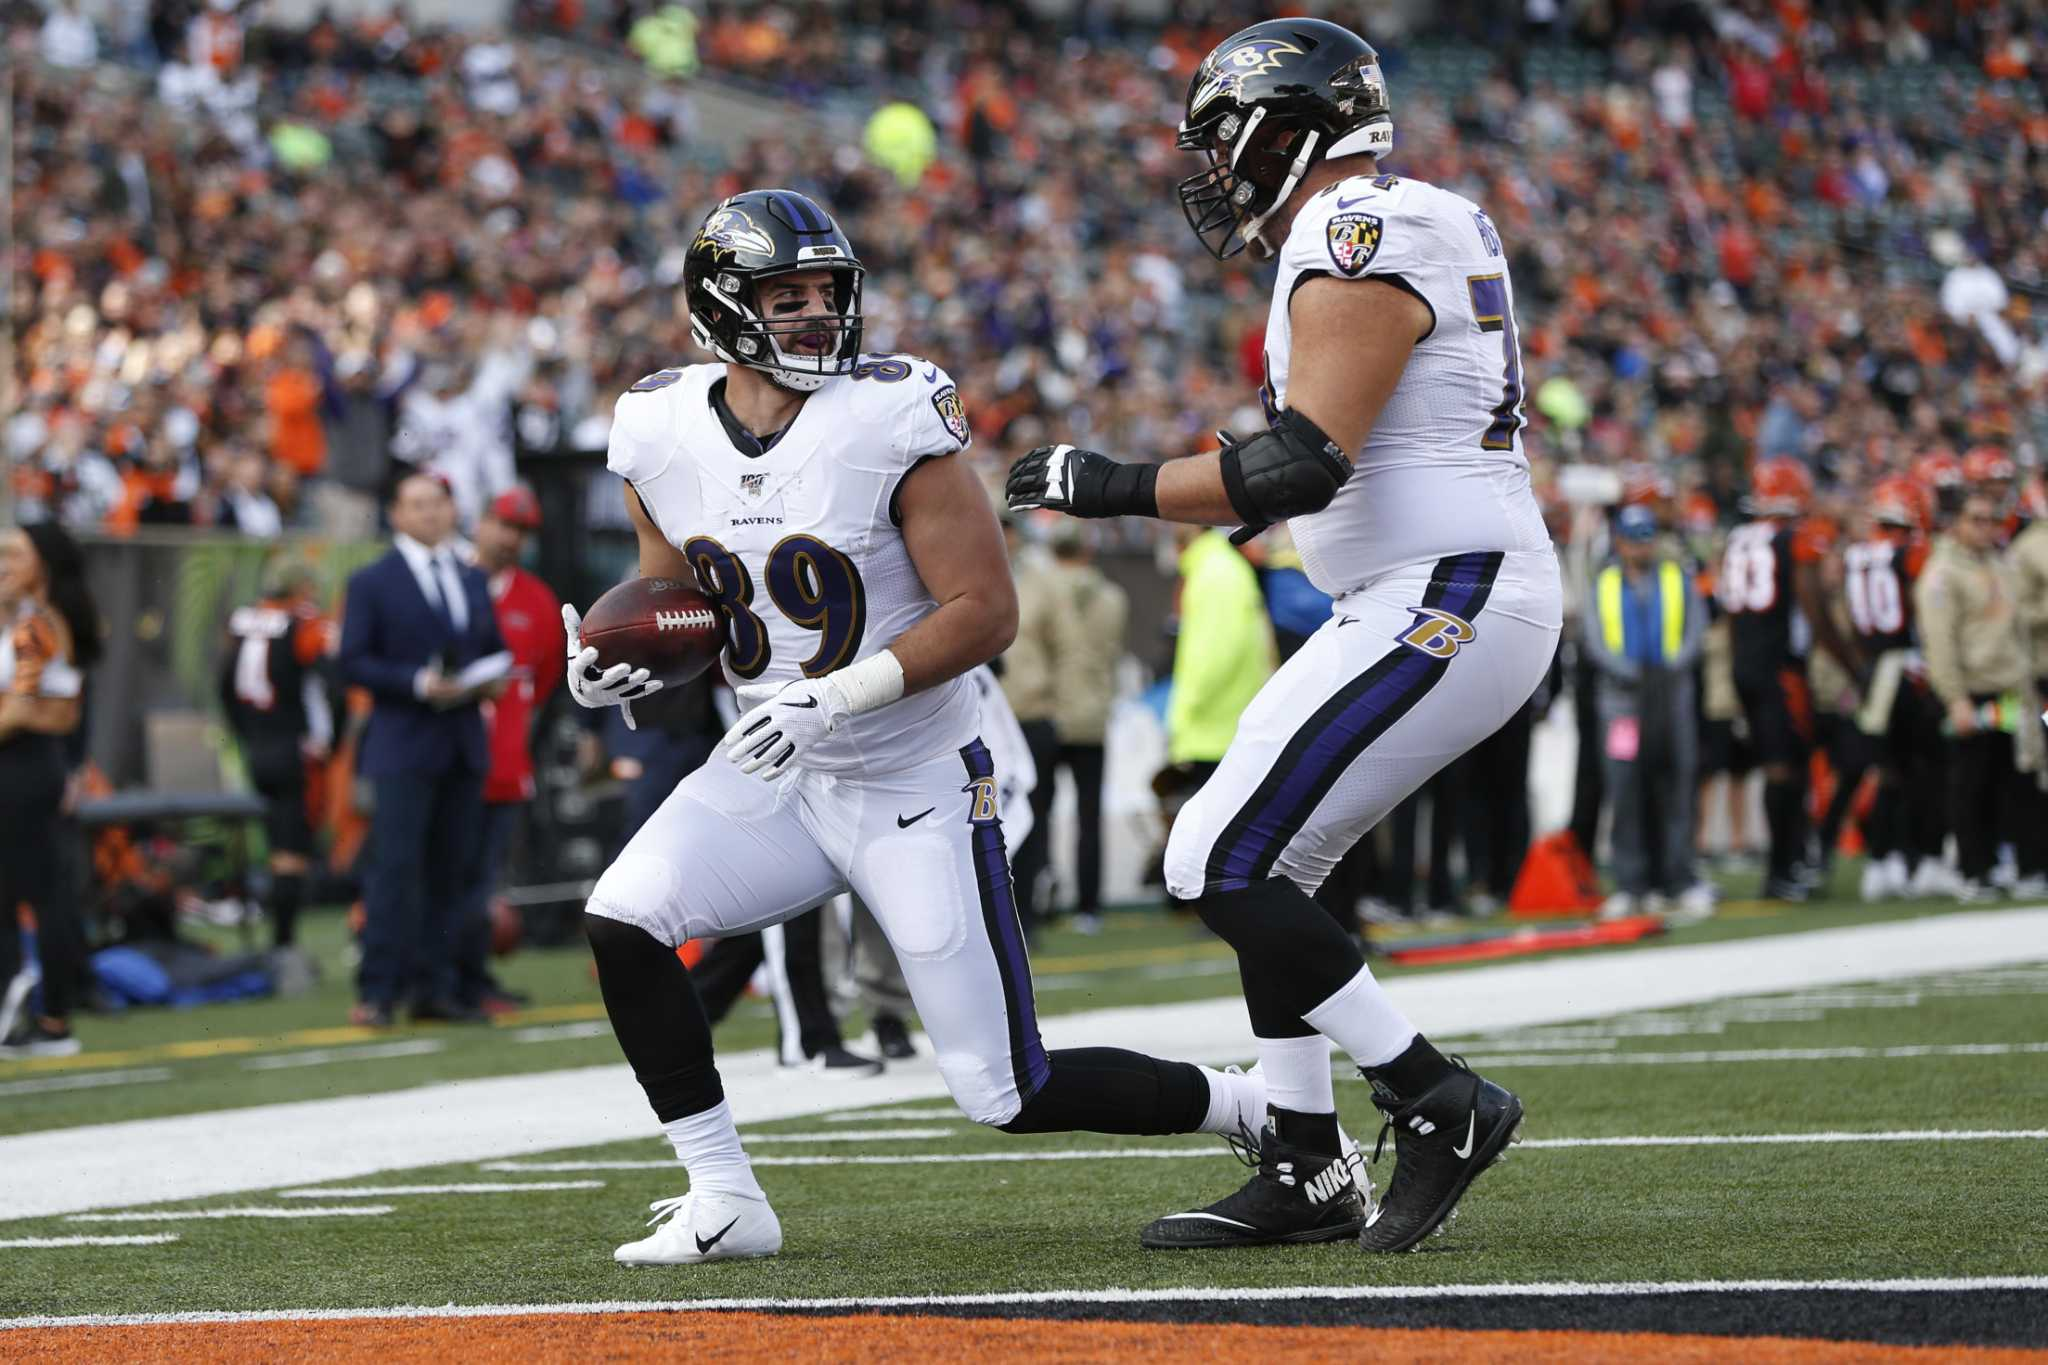 McClain: How to beat the Ravens? Play keep away or just outscore them?